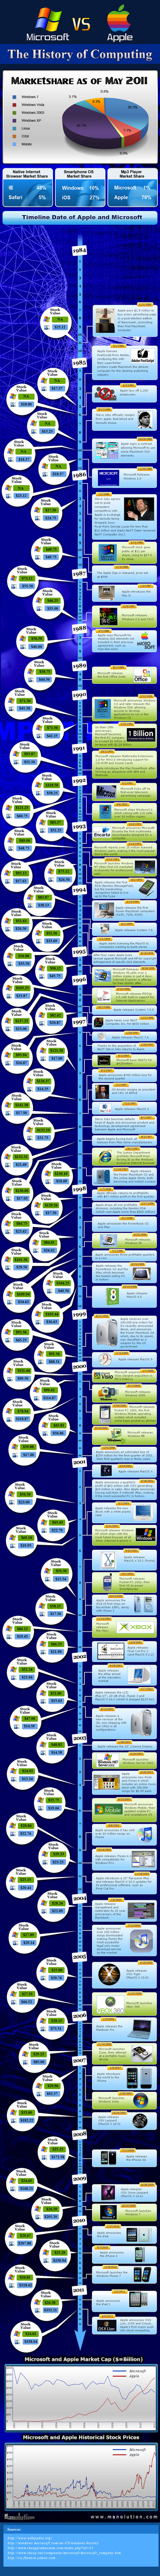 Microsoft vs Apple Infographic